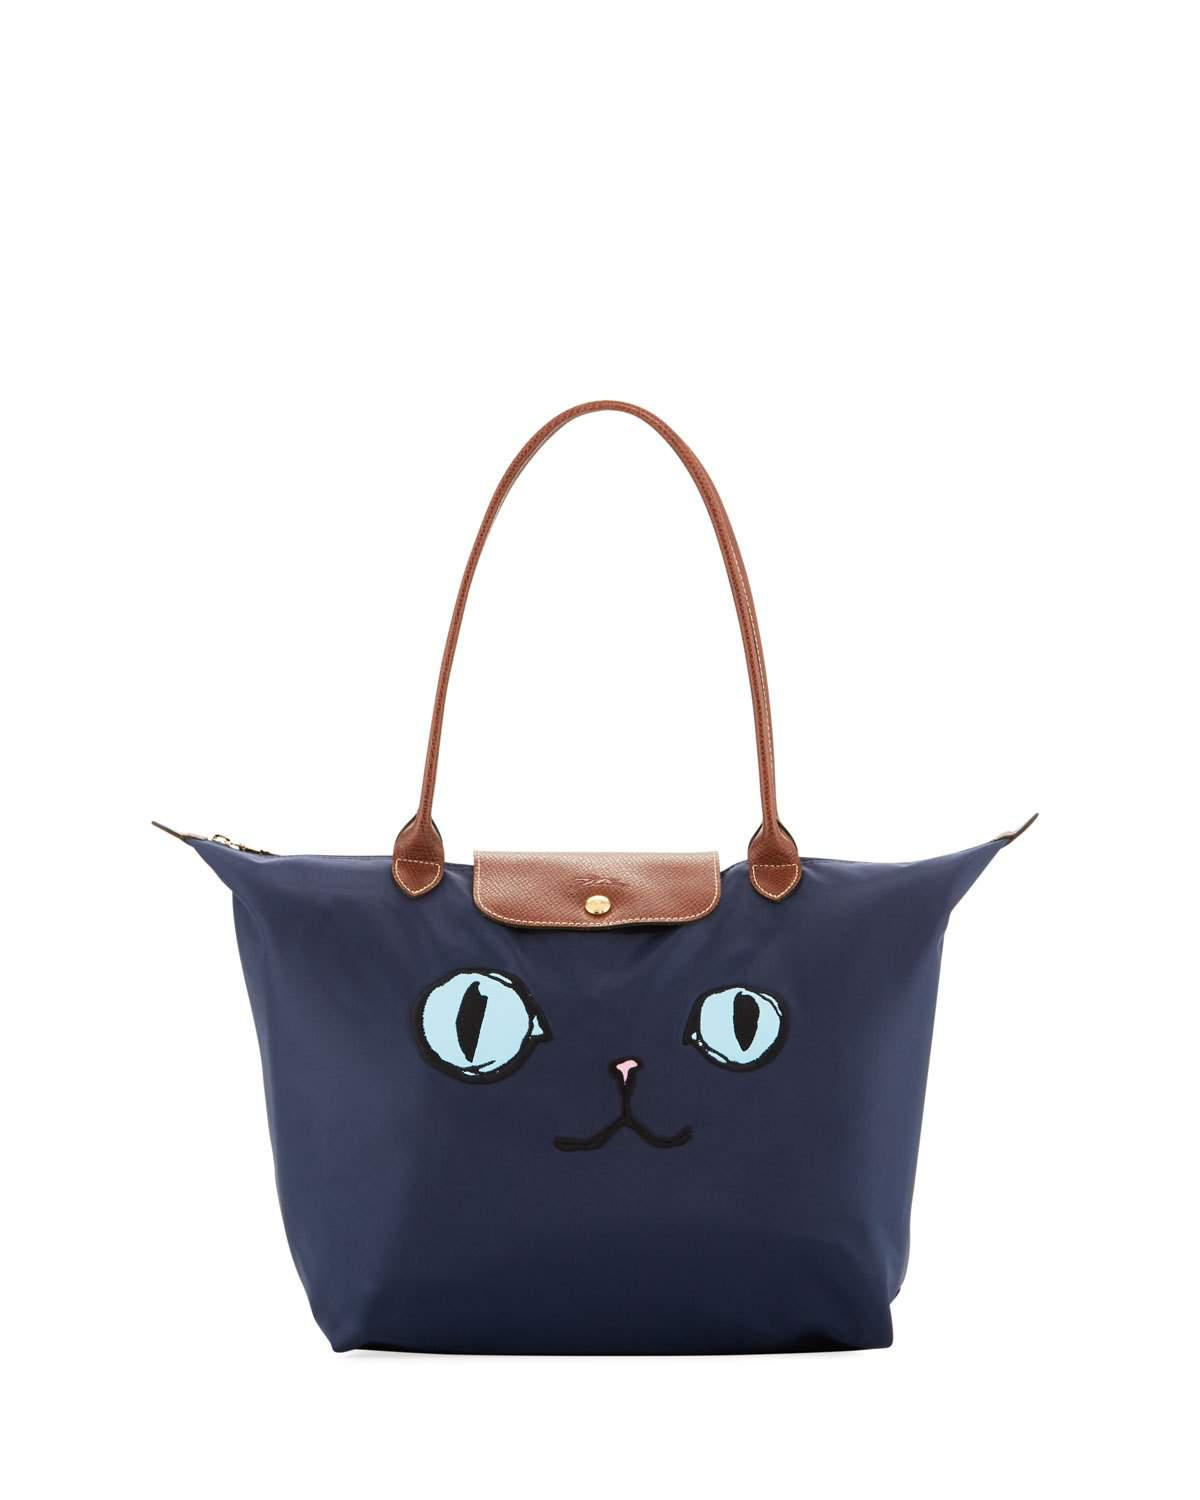 faa97c6c85aa Lyst - Longchamp Le Pliage Miaou Cat Large Shoulder Tote Bag in Blue